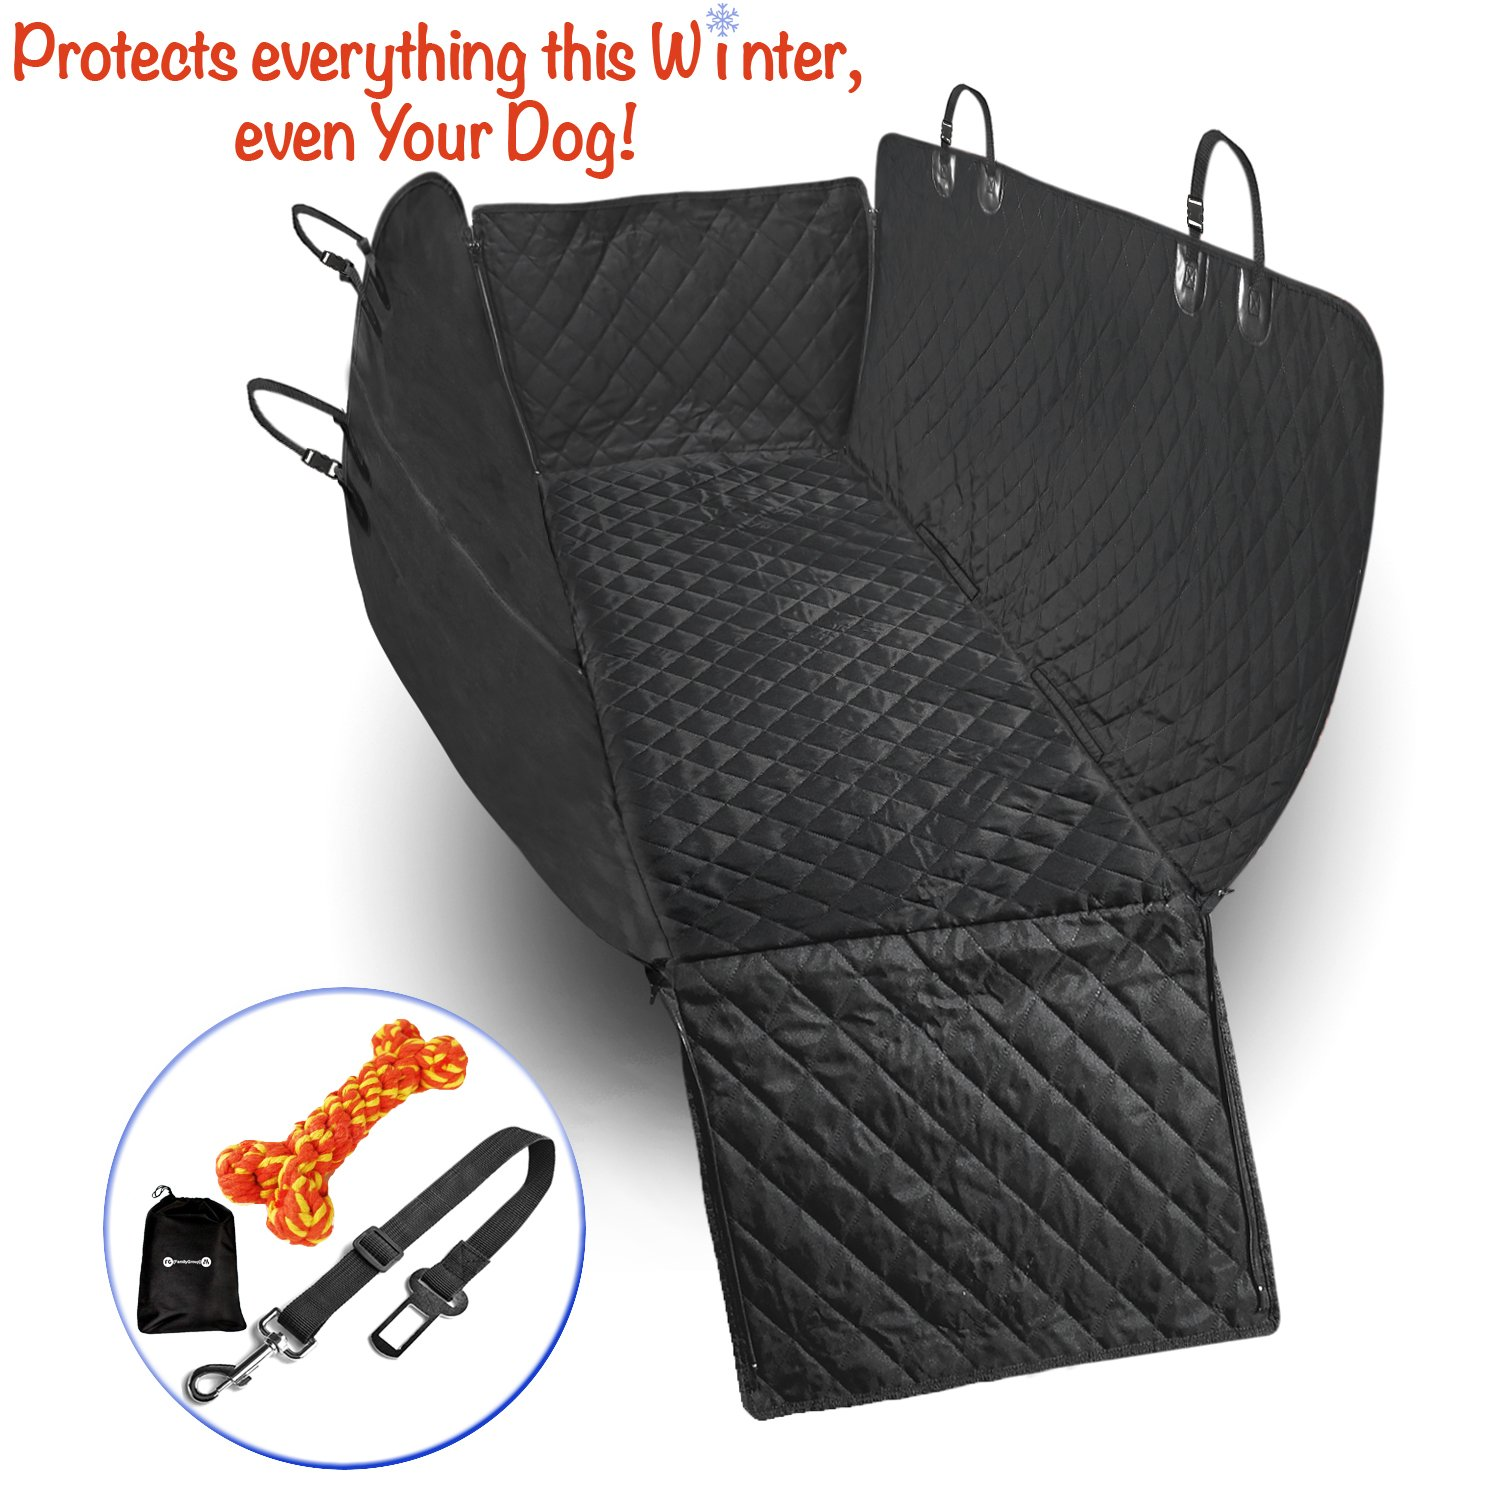 Back Seat Covers - Dog Seat Covers - Pet Seat Covers - Car Seat Covers for Dogs - Dog Car Seat Covers - Dog Hammock - Car Mats for Dogs - WATERPROOF - SIDE FLAPS -BONUS: dog toy+dog seat belt+bag 1Kit